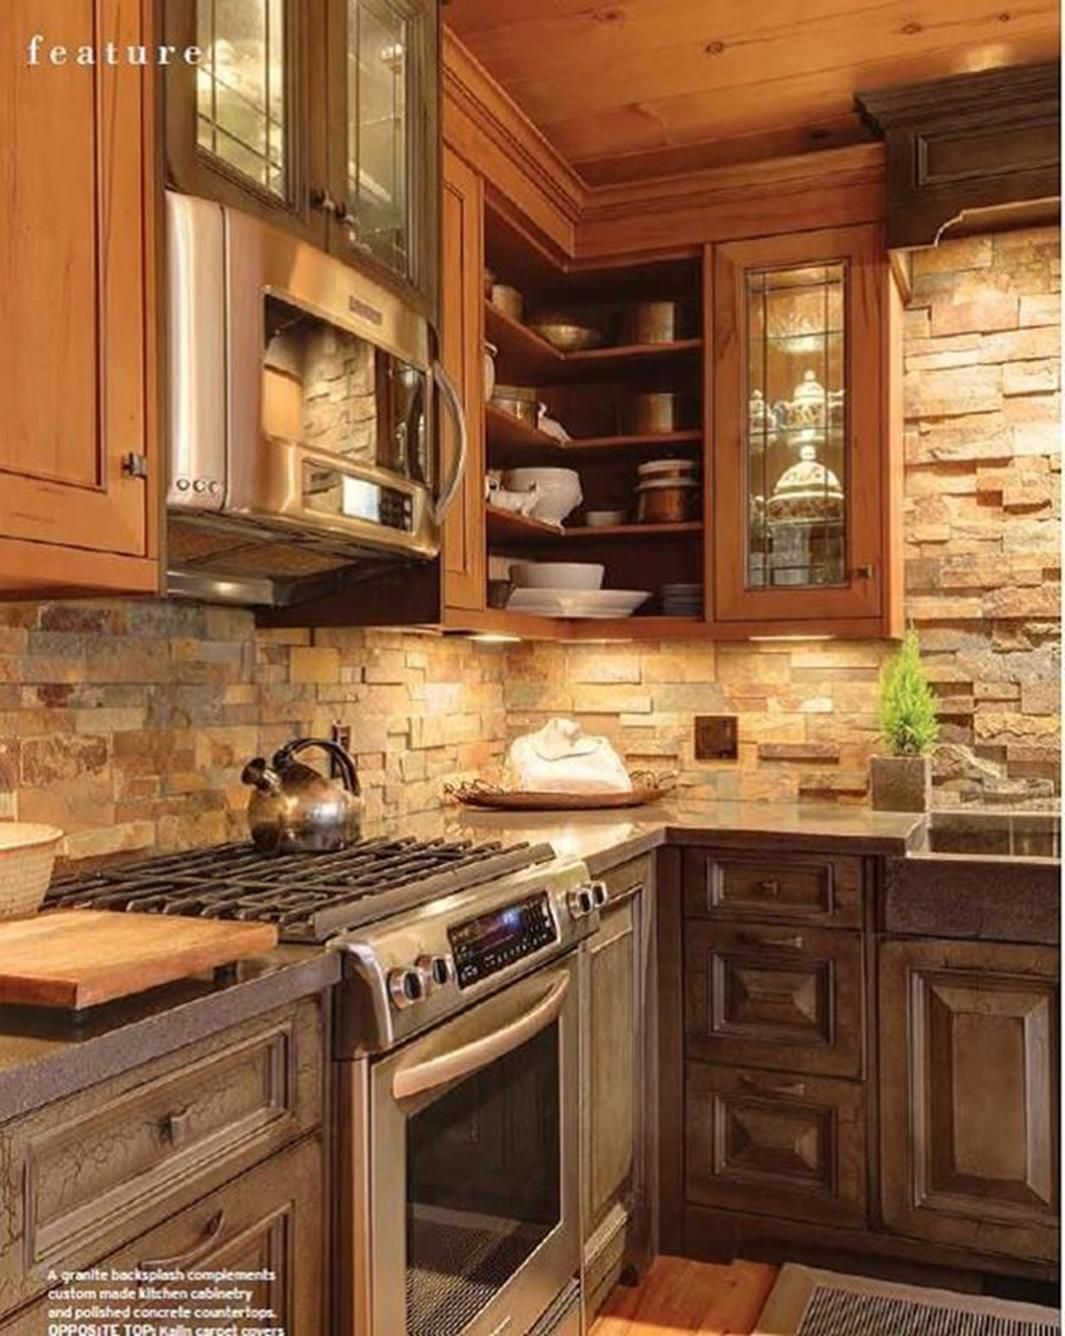 35 Perfect Small Cottage Kitchens Decorating Ideas | Small ... on Rustic:mophcifcrpe= Cottage Kitchen Ideas  id=88969